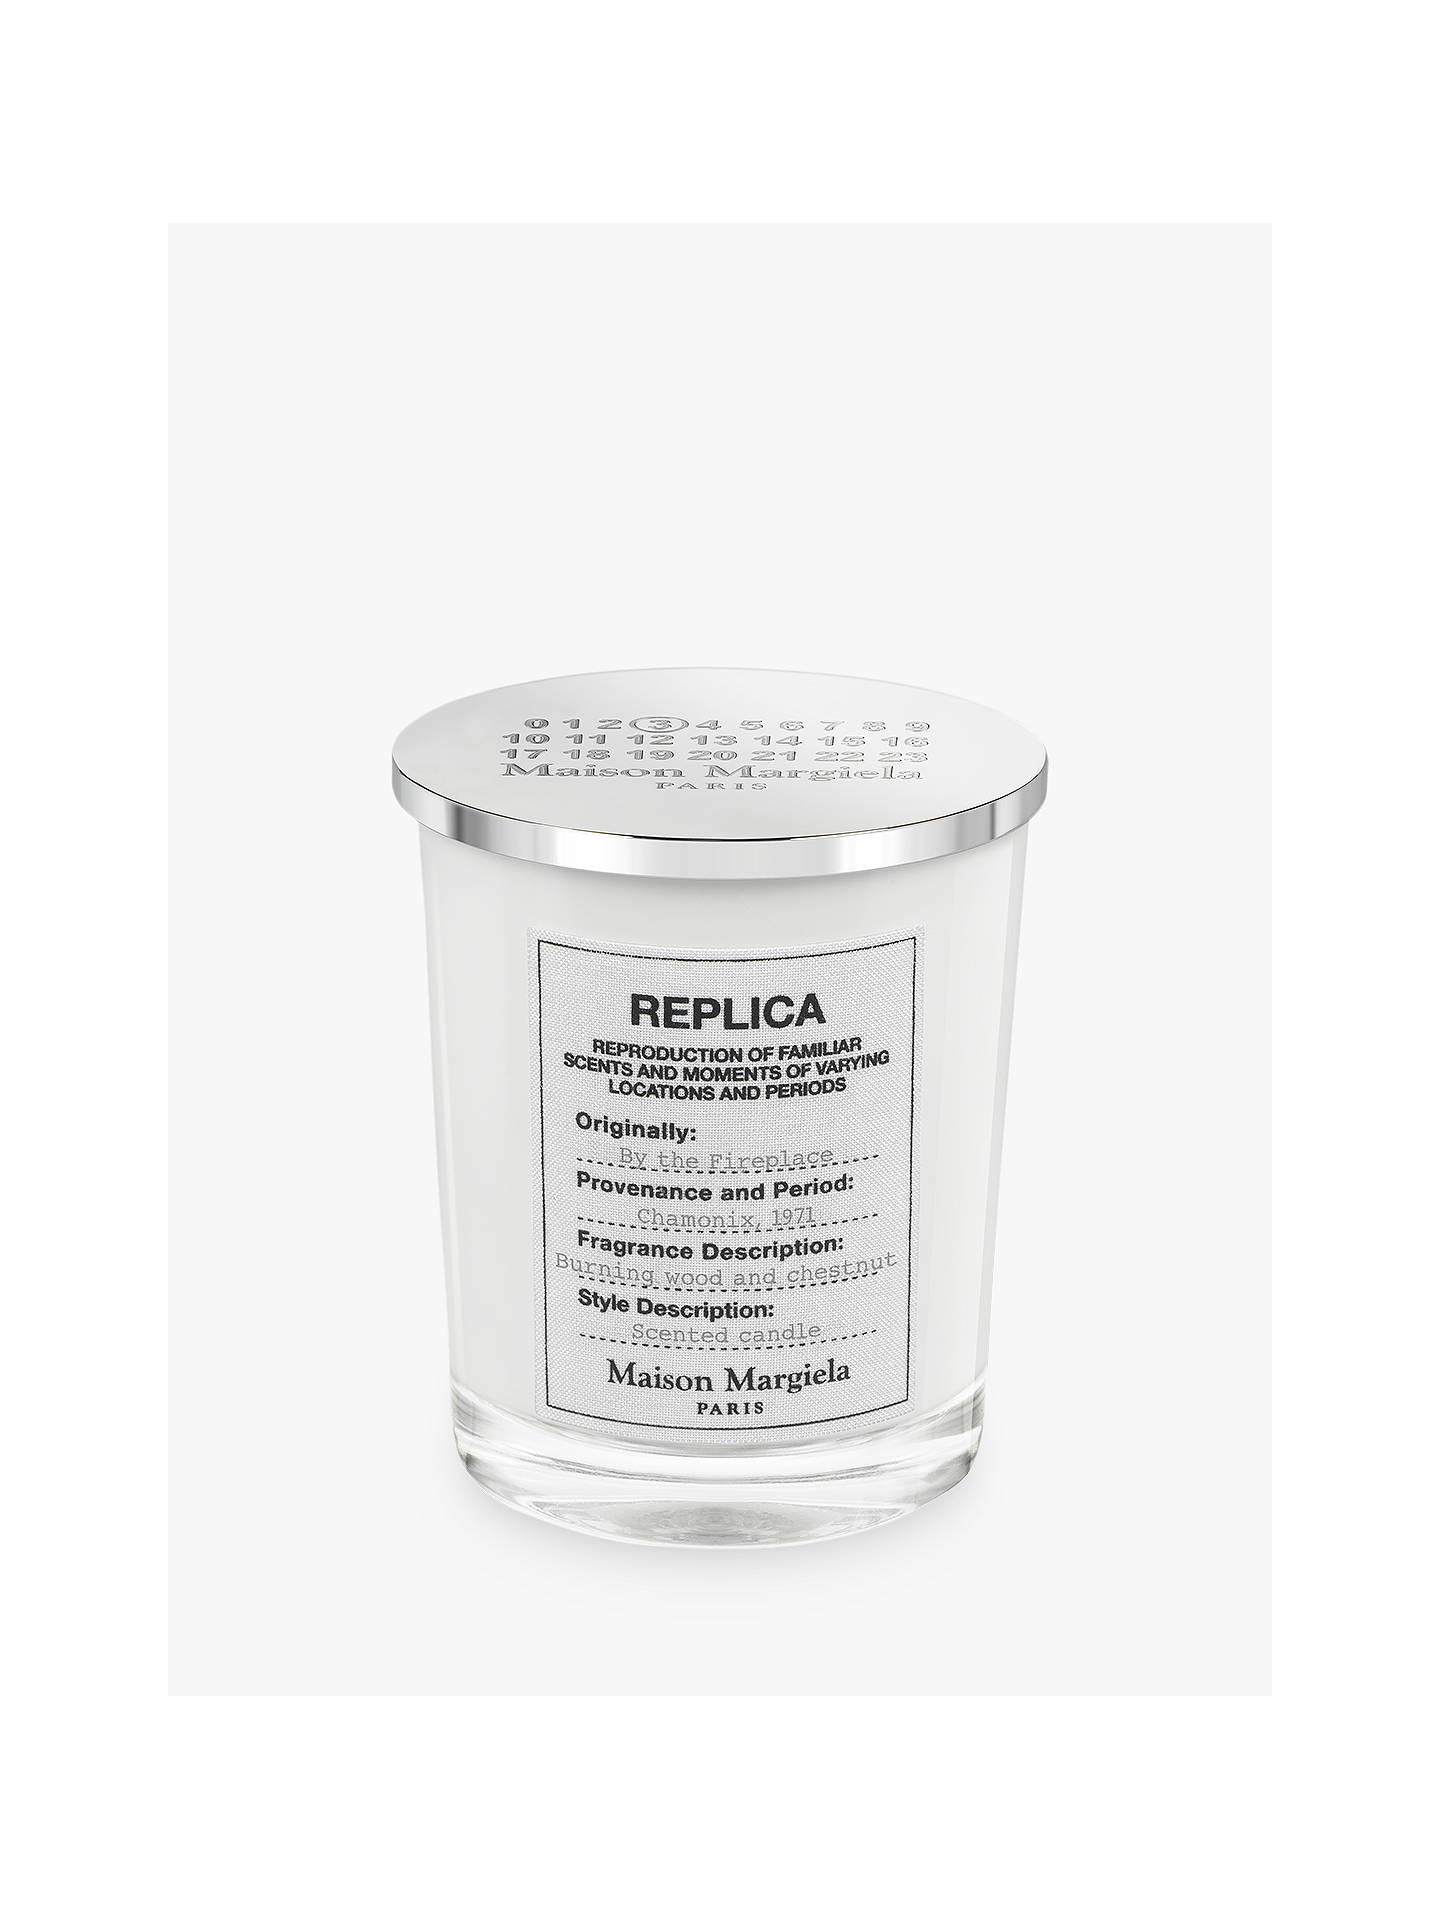 Maison Margiela Replica By The Fireplace Candle 185g At